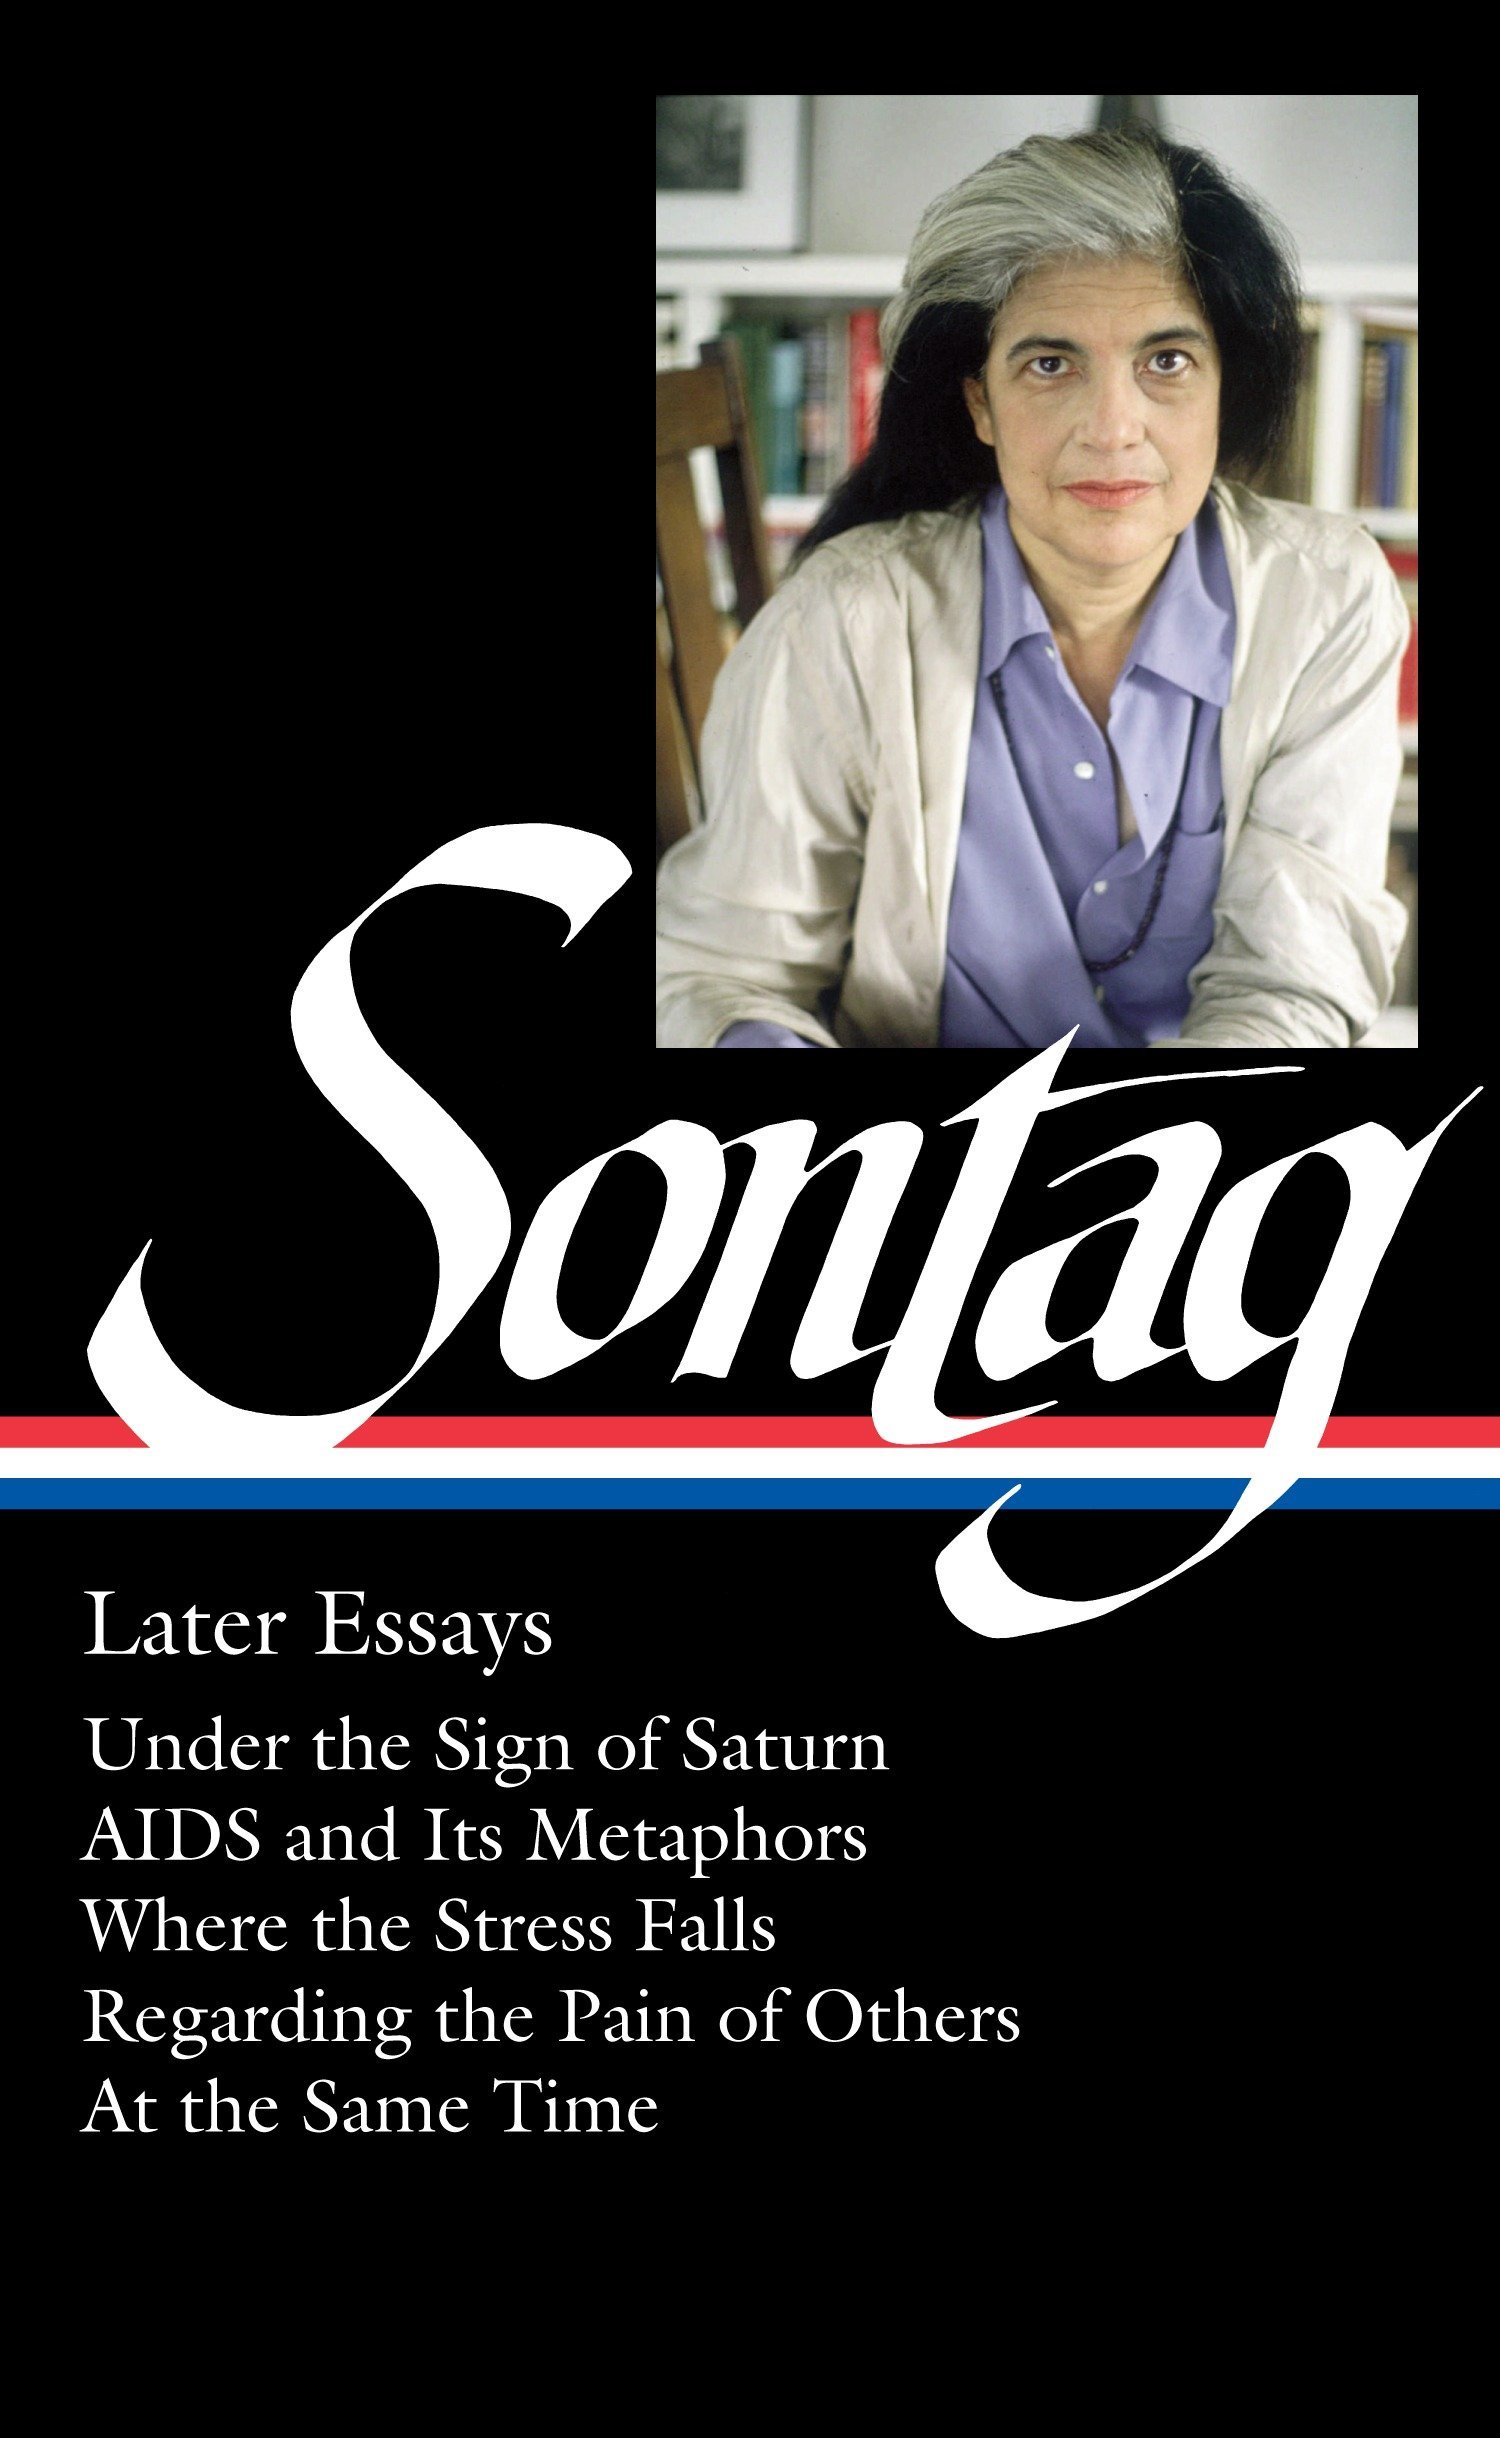 Download Susan Sontag: Later Essays (LOA #292): Under the Sign of Saturn / AIDS and its Metaphors / Where the Stress Falls / Regarding the Pain of Others / At ... (Library of America Susan Sontag Edition) pdf